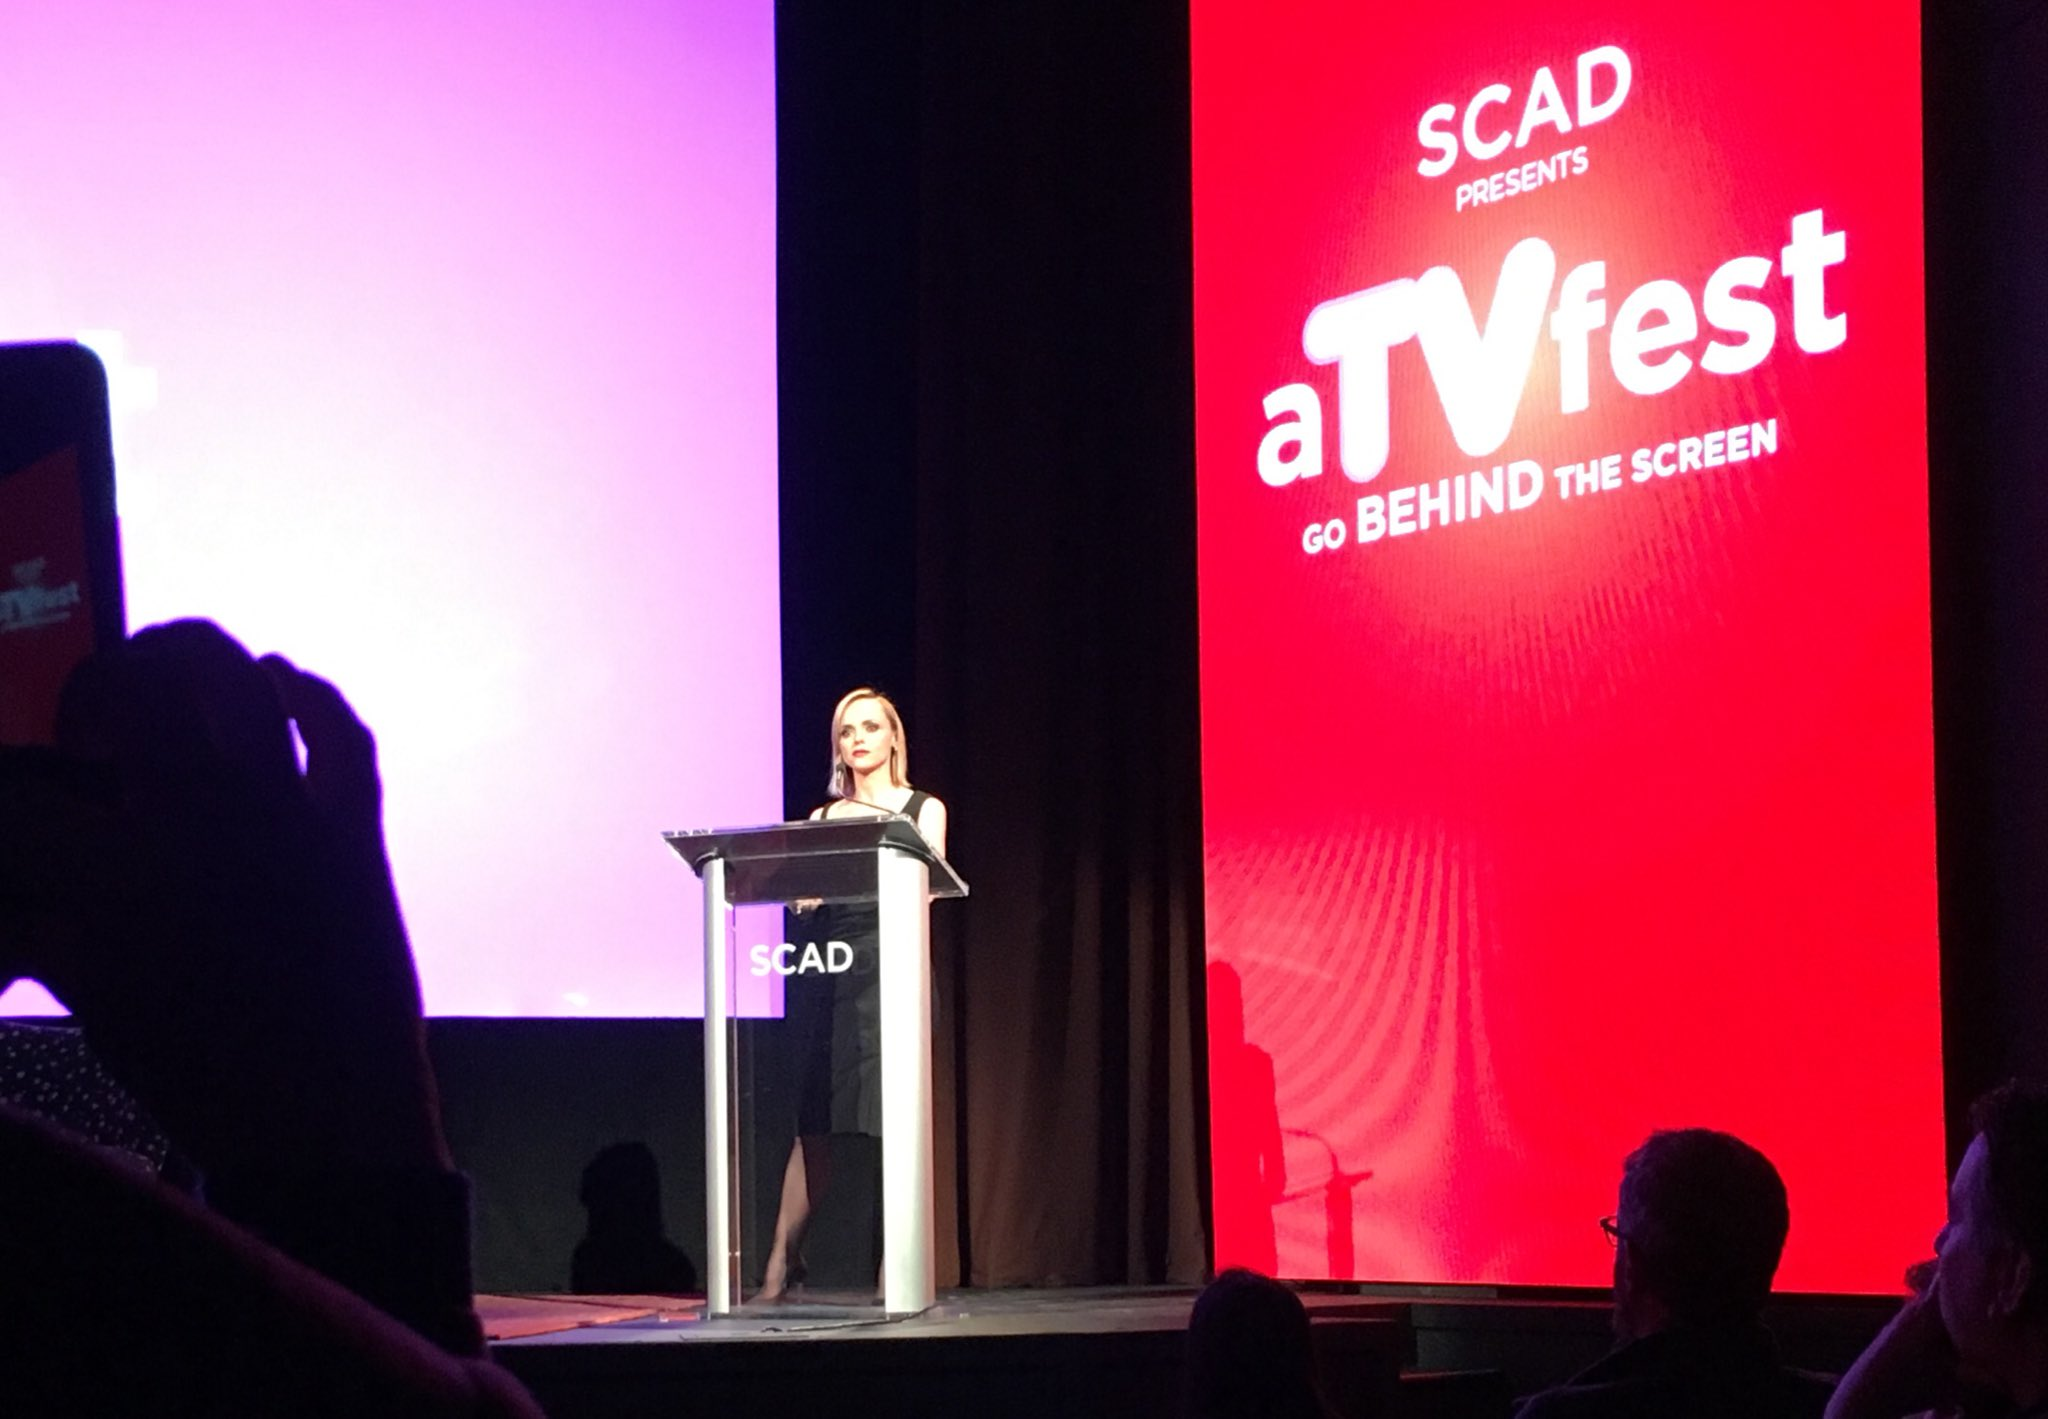 Got to see a longtime favorite actress @ChristinaRicci accept a well-deserved award at the #SCAD #atvfest! Congrats Christina! https://t.co/2ziQADDNcx